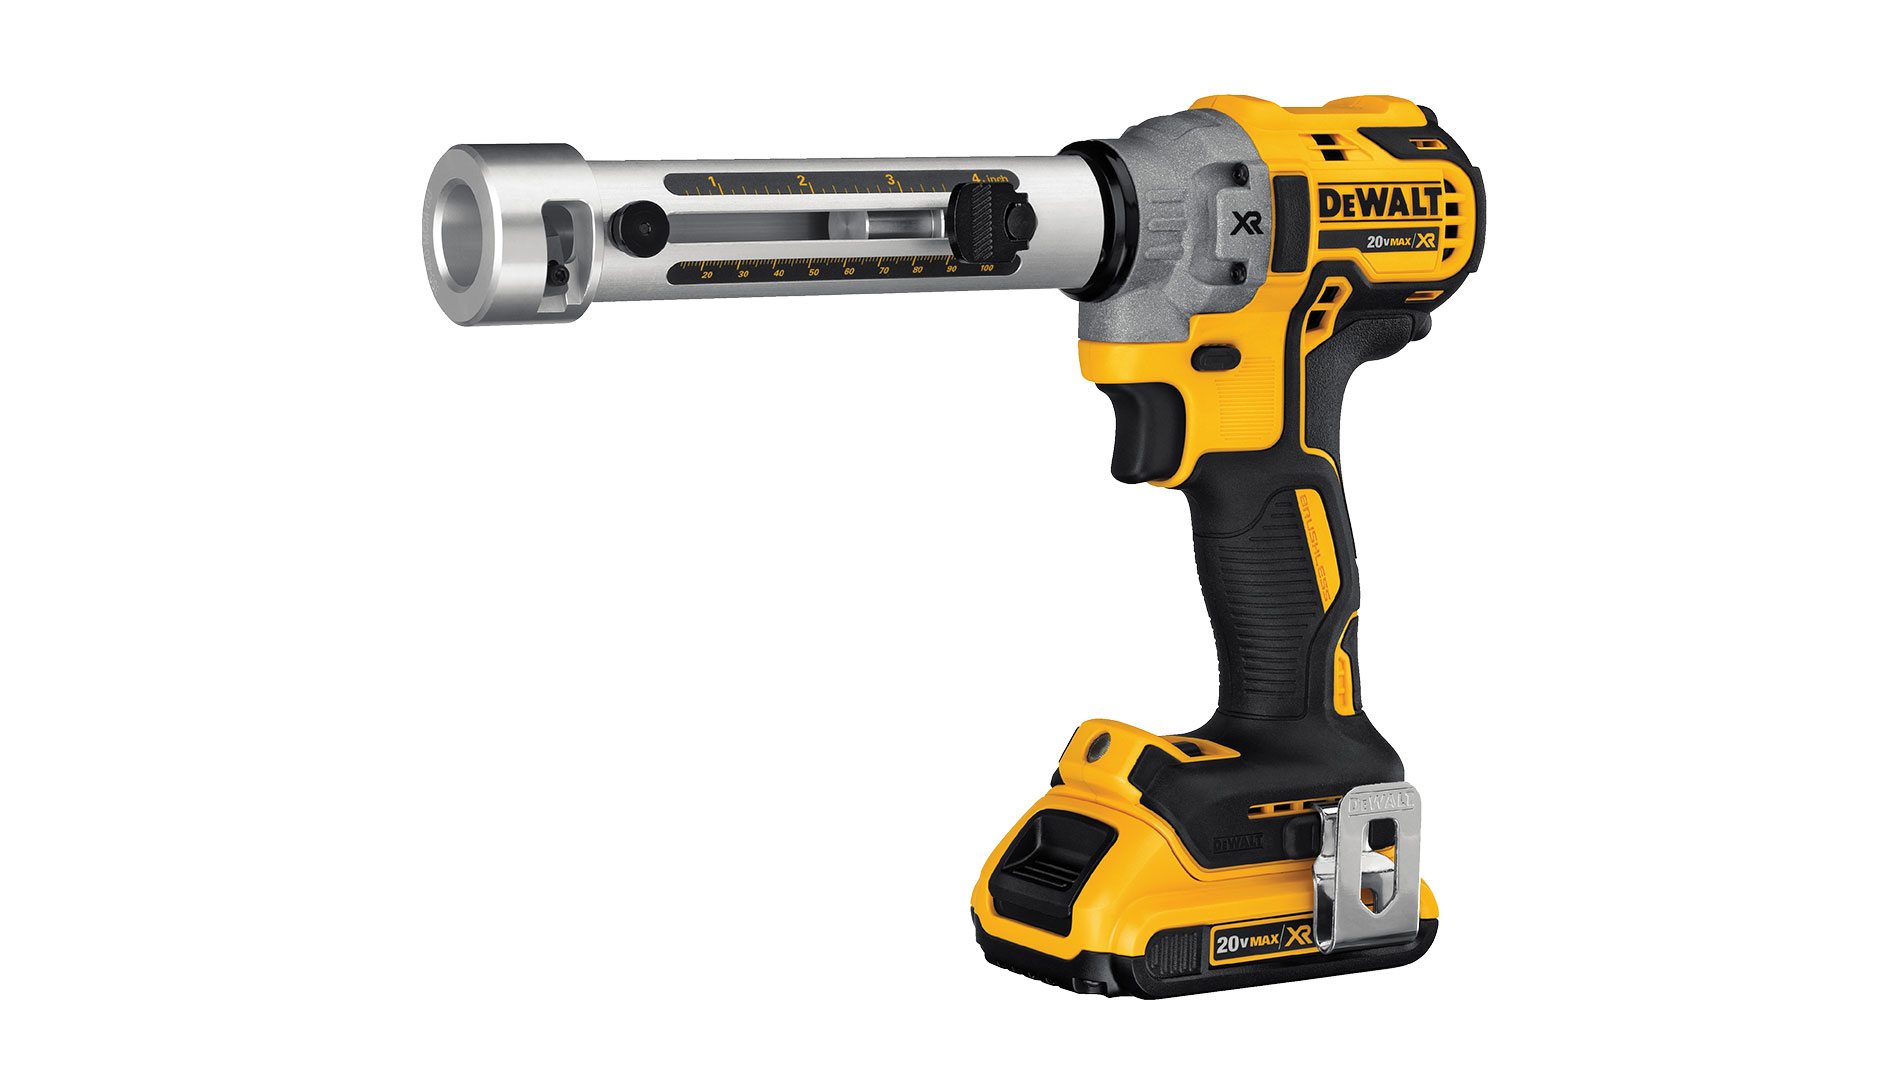 The smaller form and lighter weight of DeWalt's 20V MAX cordless cable stripper helps the user complete work faster and with less strain.